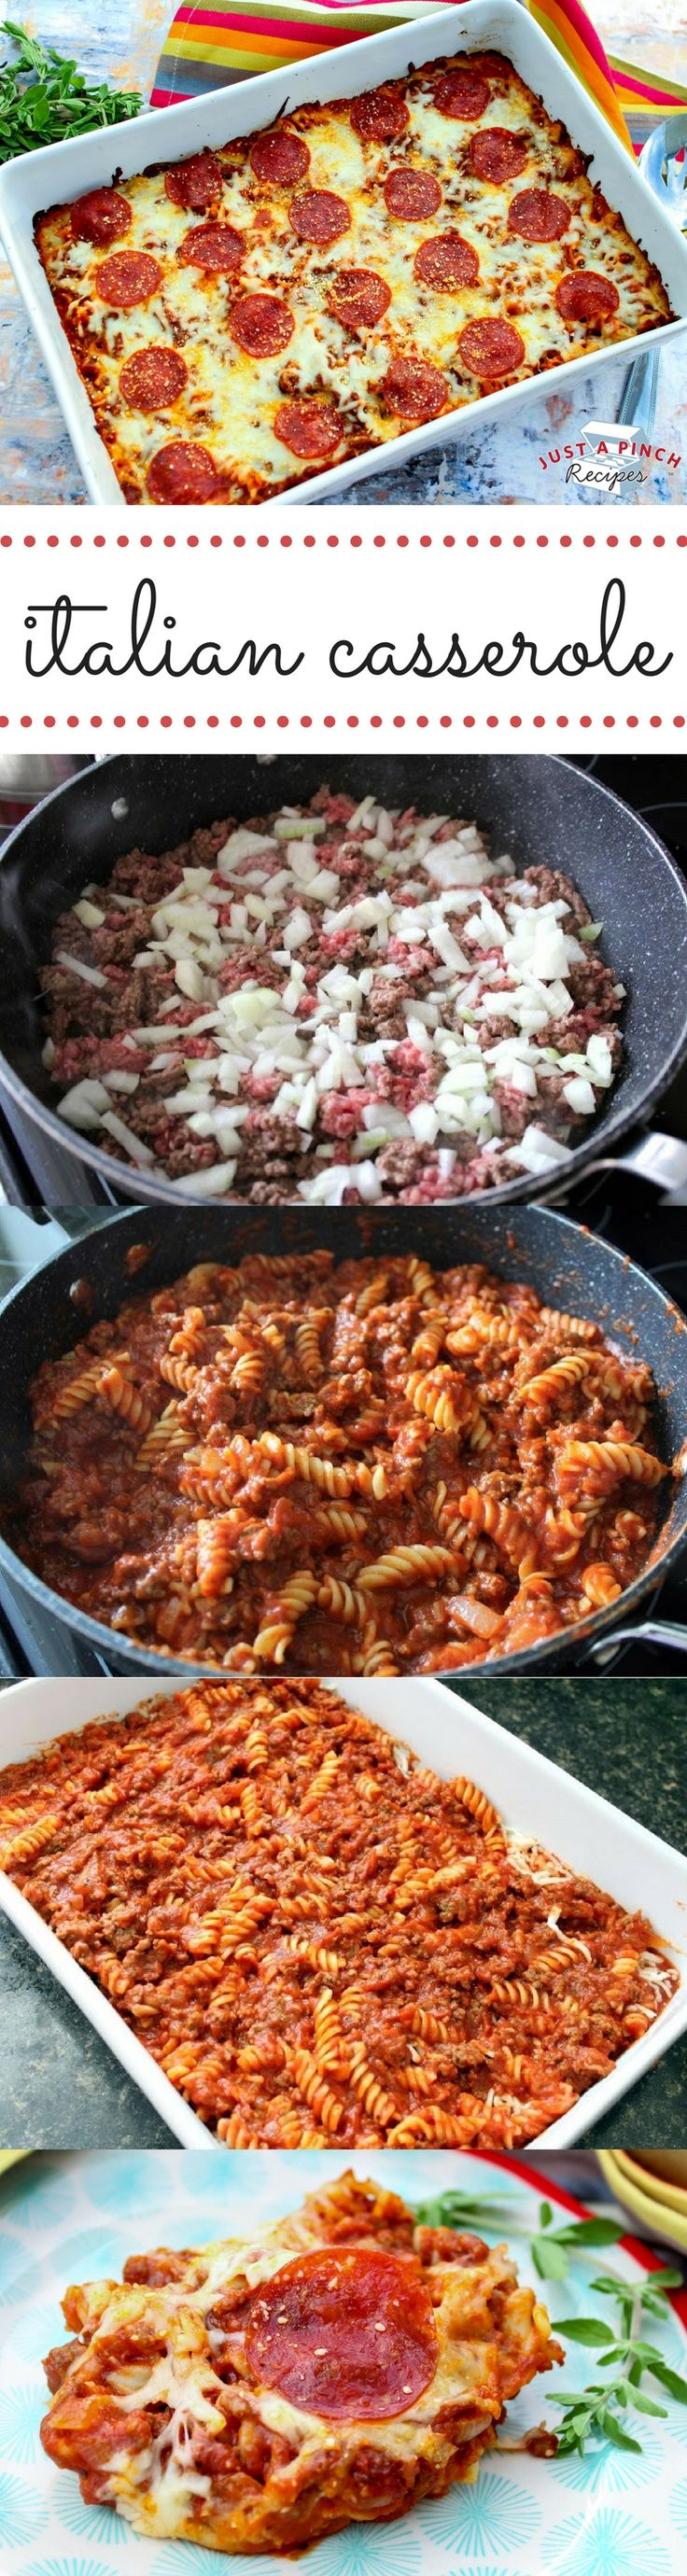 I love the meaty marinara pasta that you can buy. So I decided to try to make it at home. It is easy to make and very appetizing. This tastes like a cross between a meat lovers pizza and lasagna.